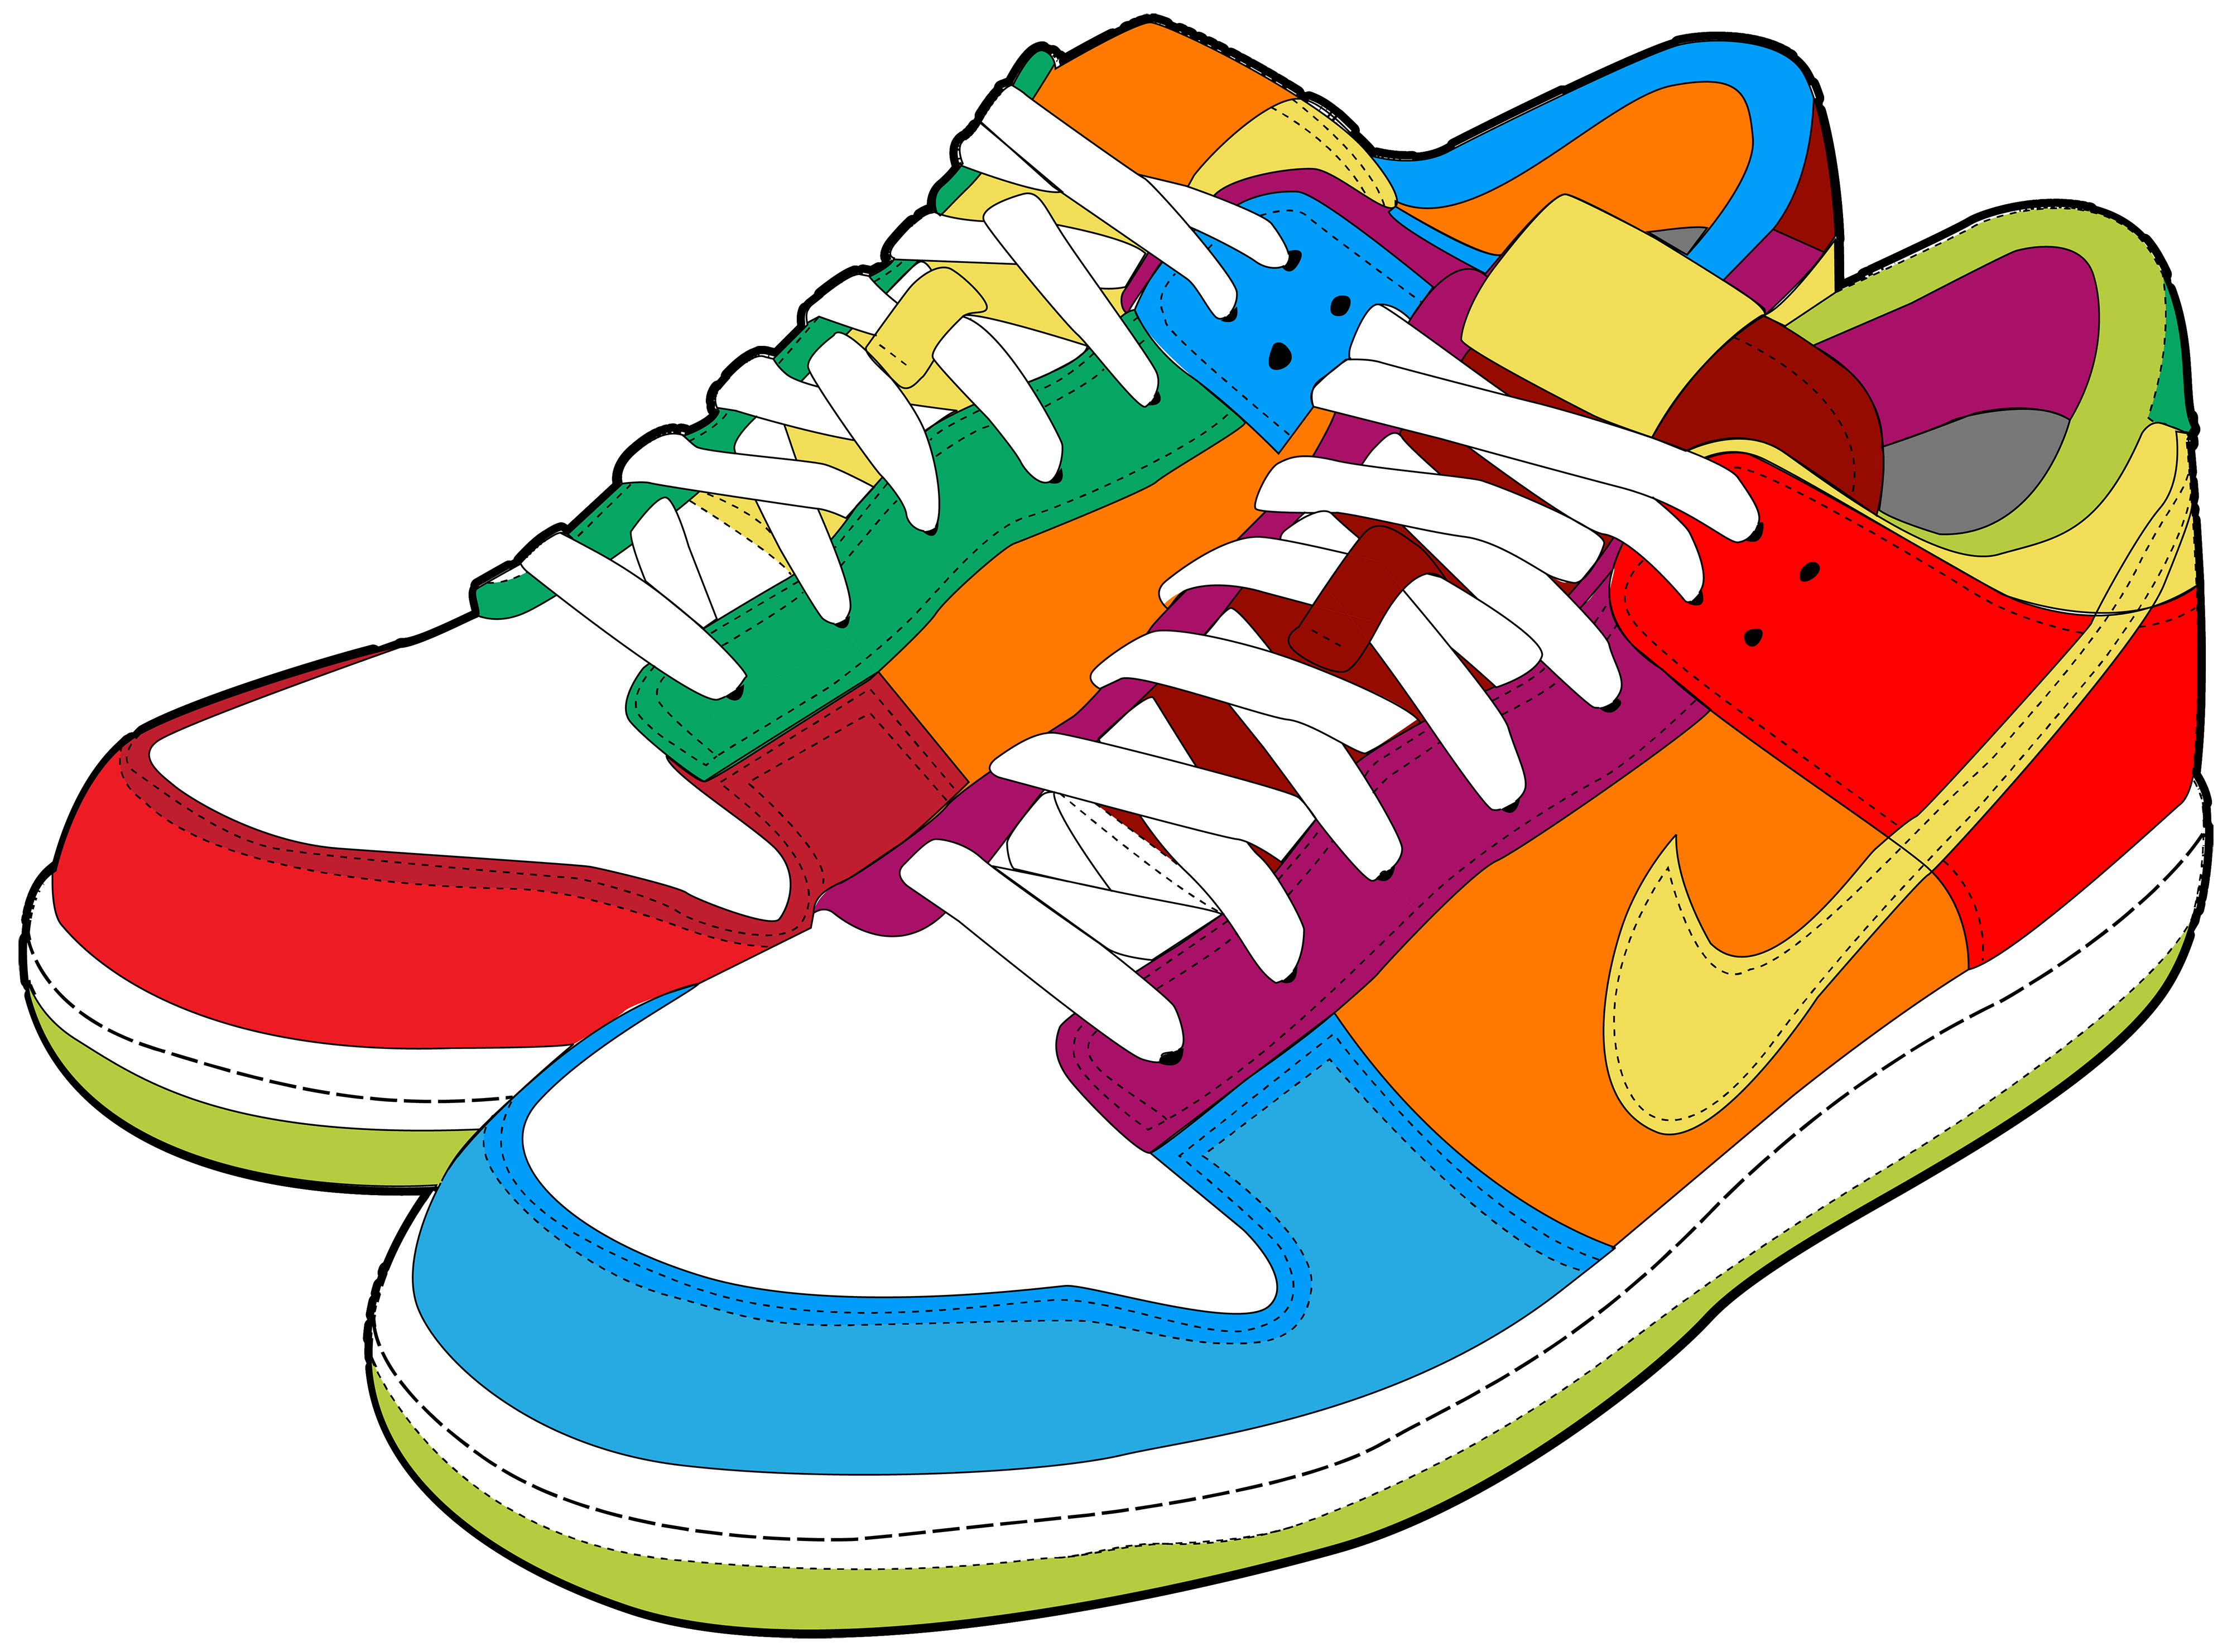 Clipart shoes. Colorful sneakers png best